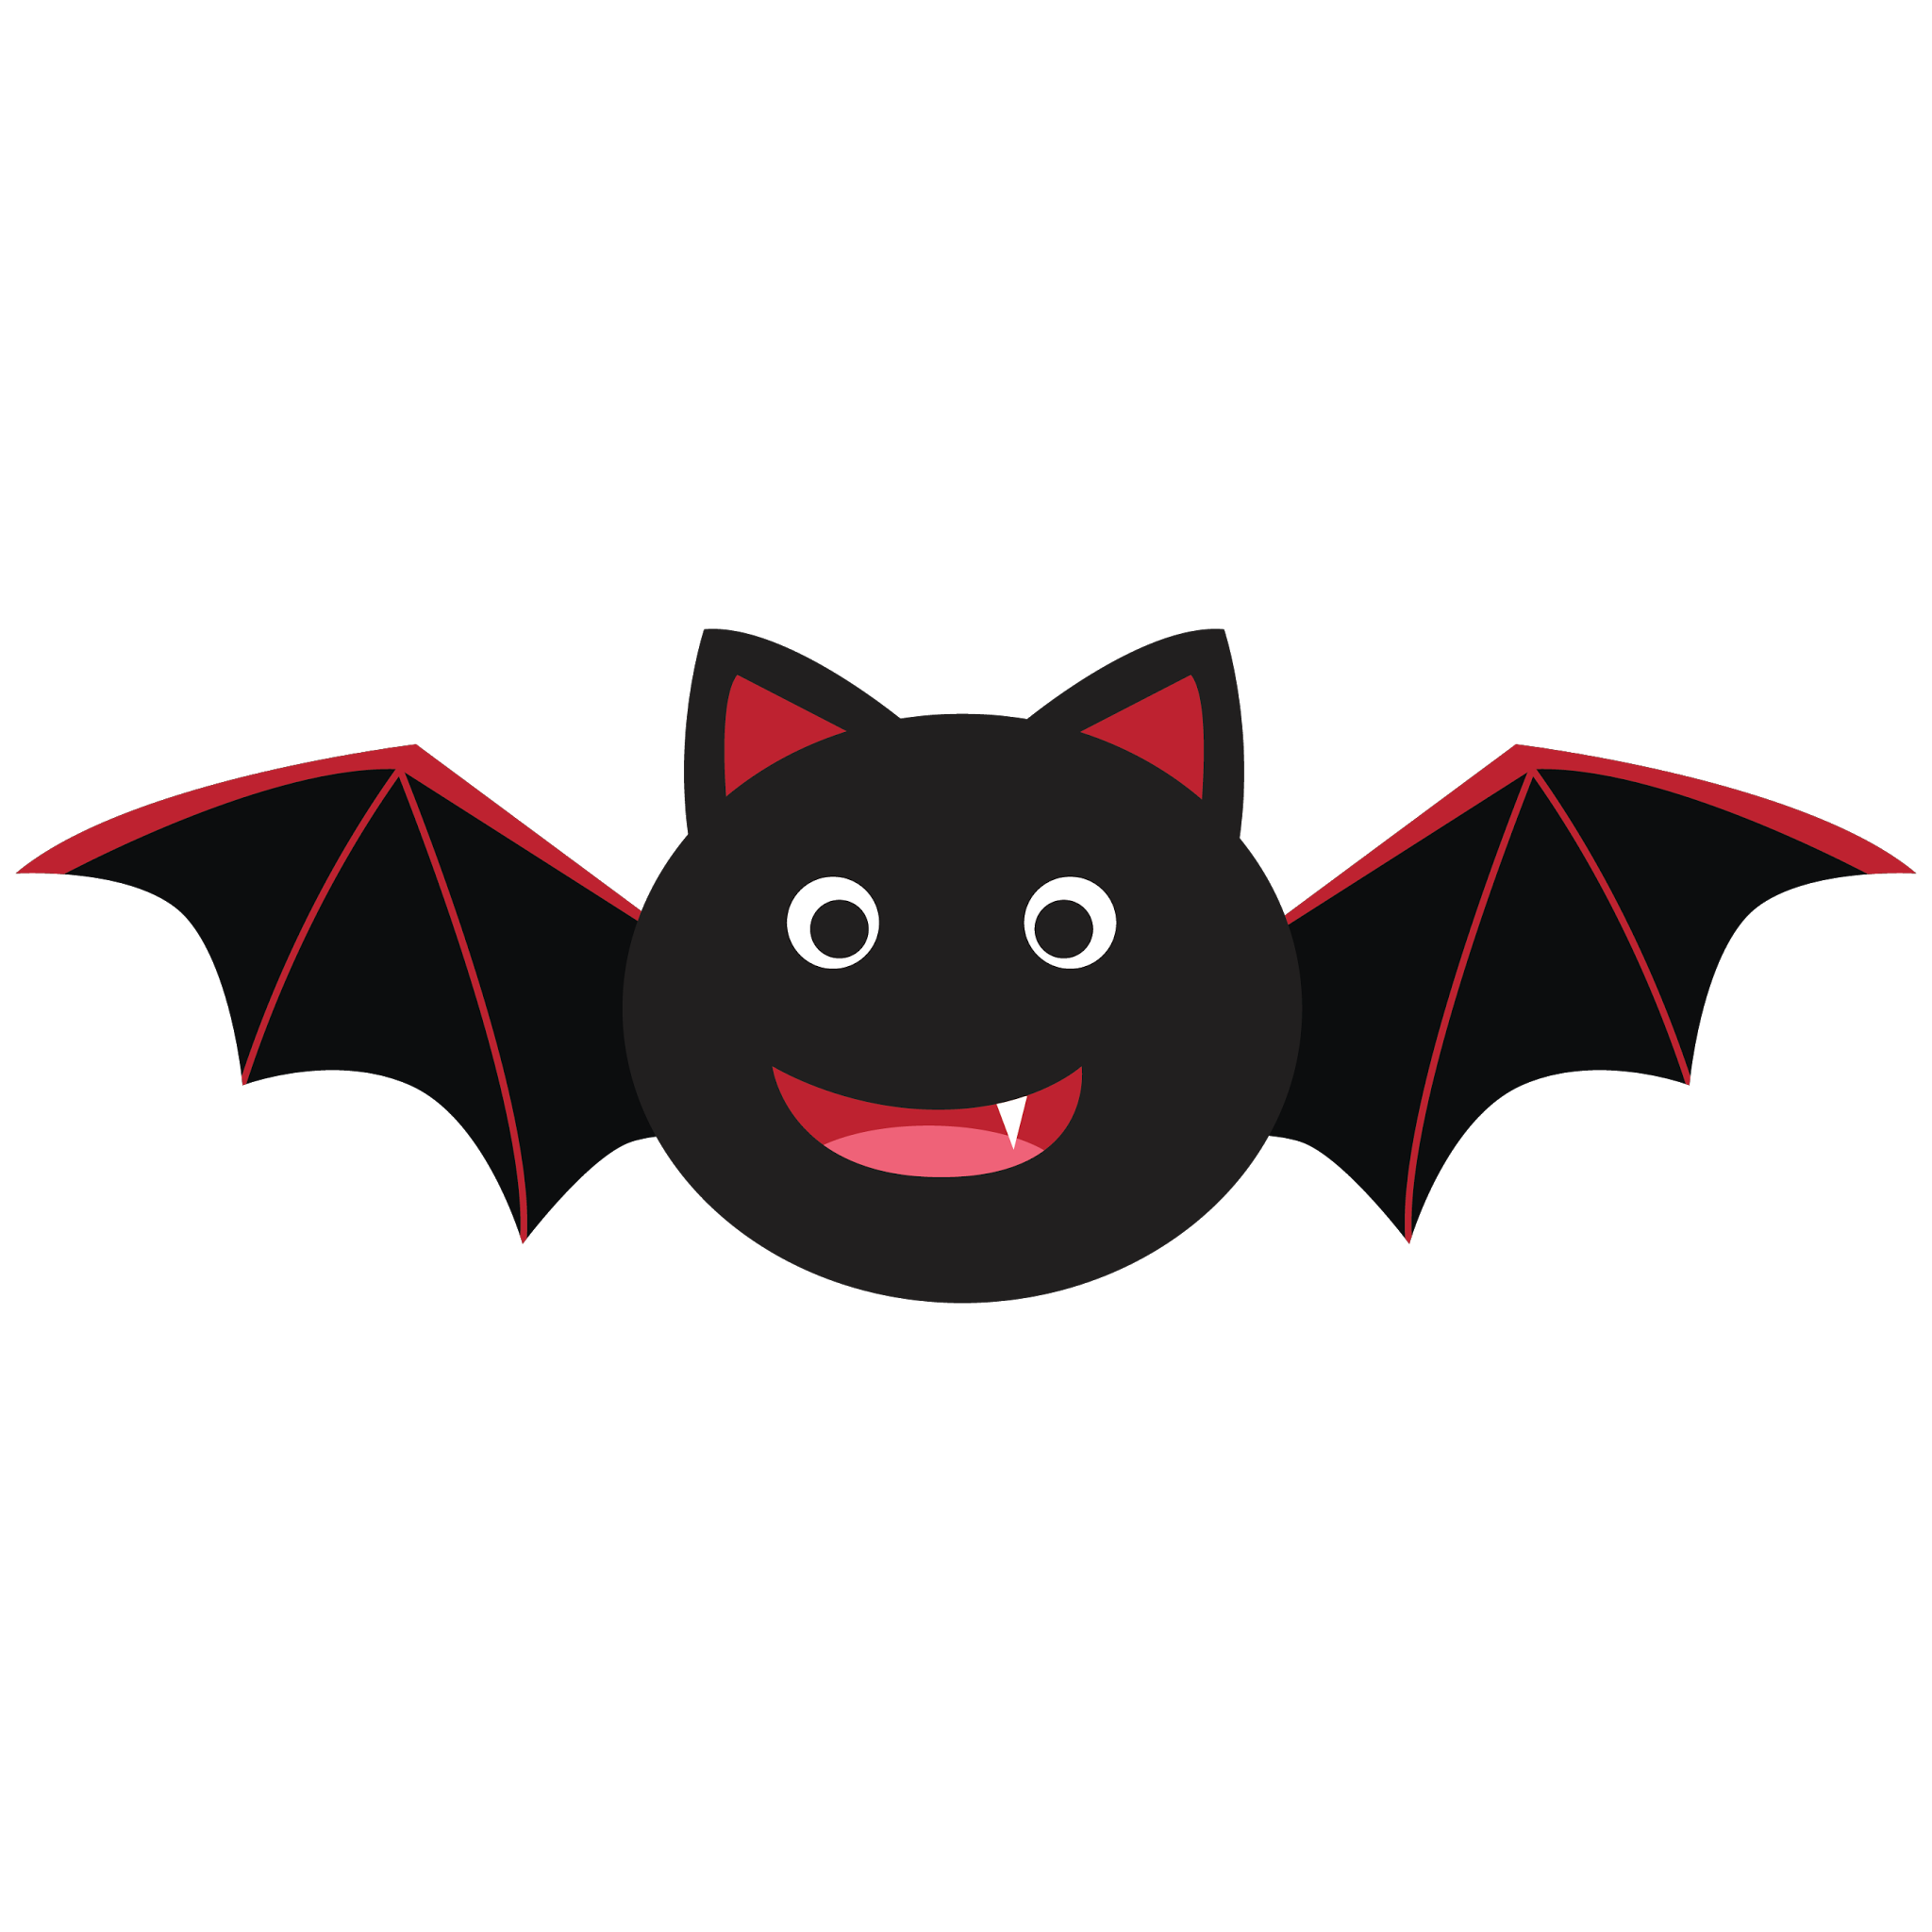 Clipart bats halloween banner royalty free library 28+ Collection of Bat Clipart For Halloween | High quality, free ... banner royalty free library